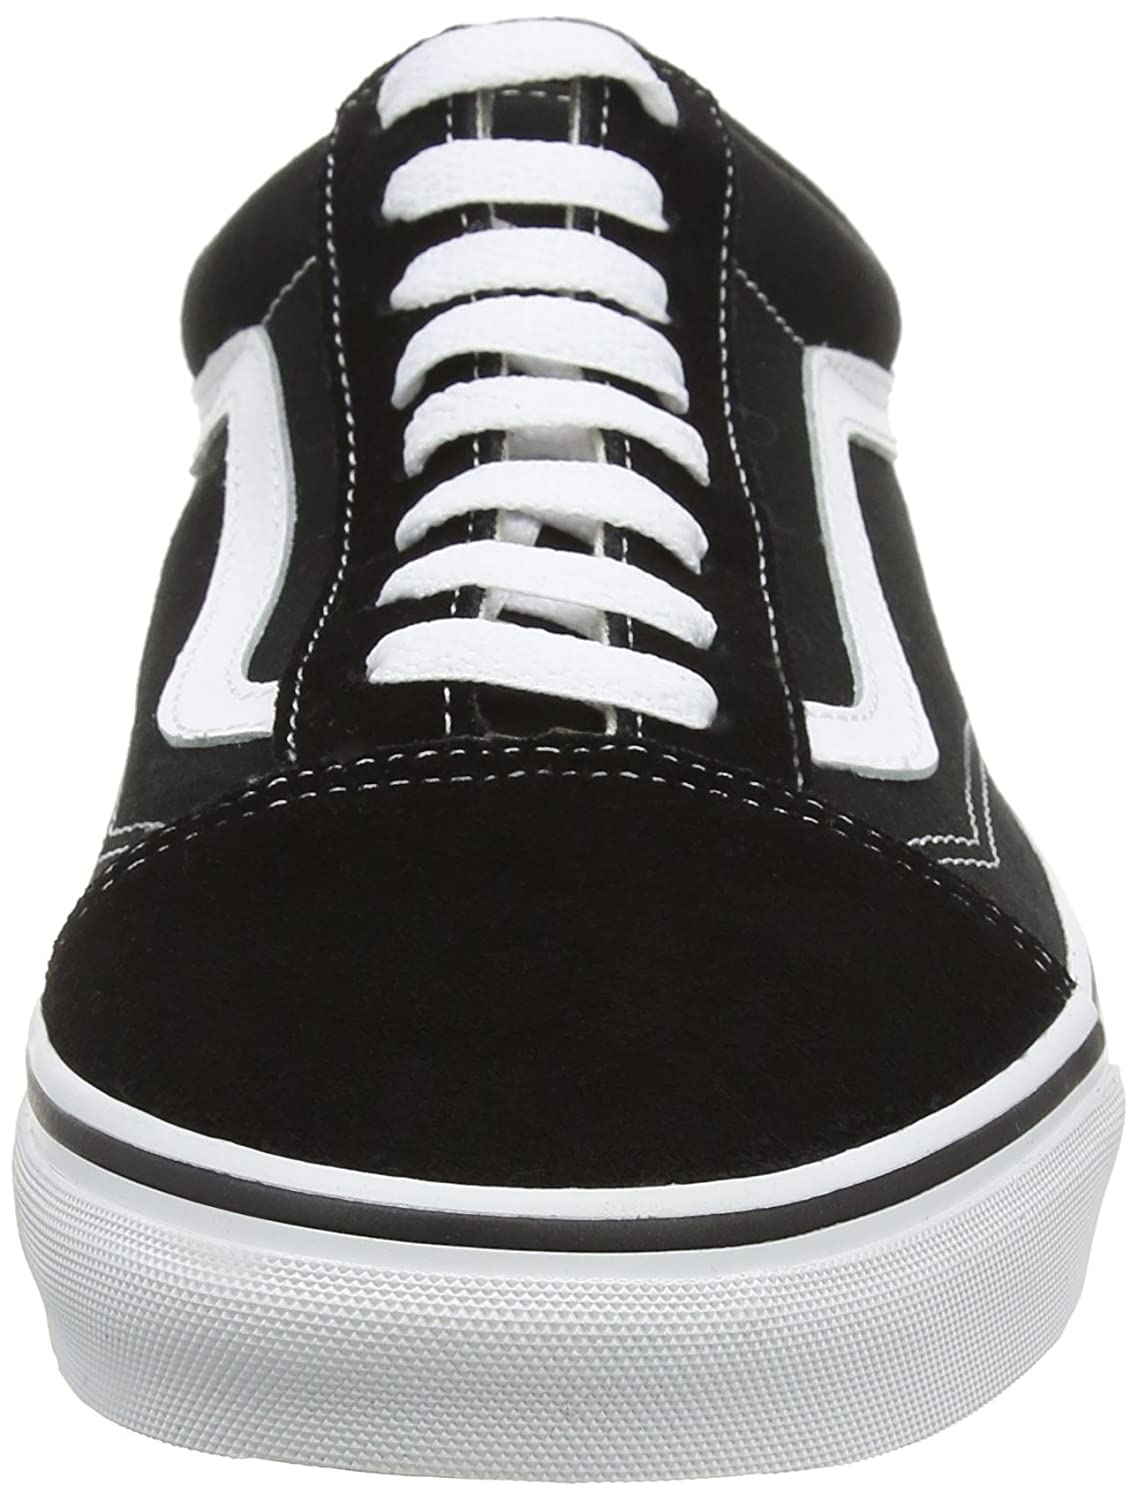 8c75fbf5a10 ... Vans Unisex Old Skool Classic Skate Shoes B07216BTKS 5.5 US US US Men    7 US ...